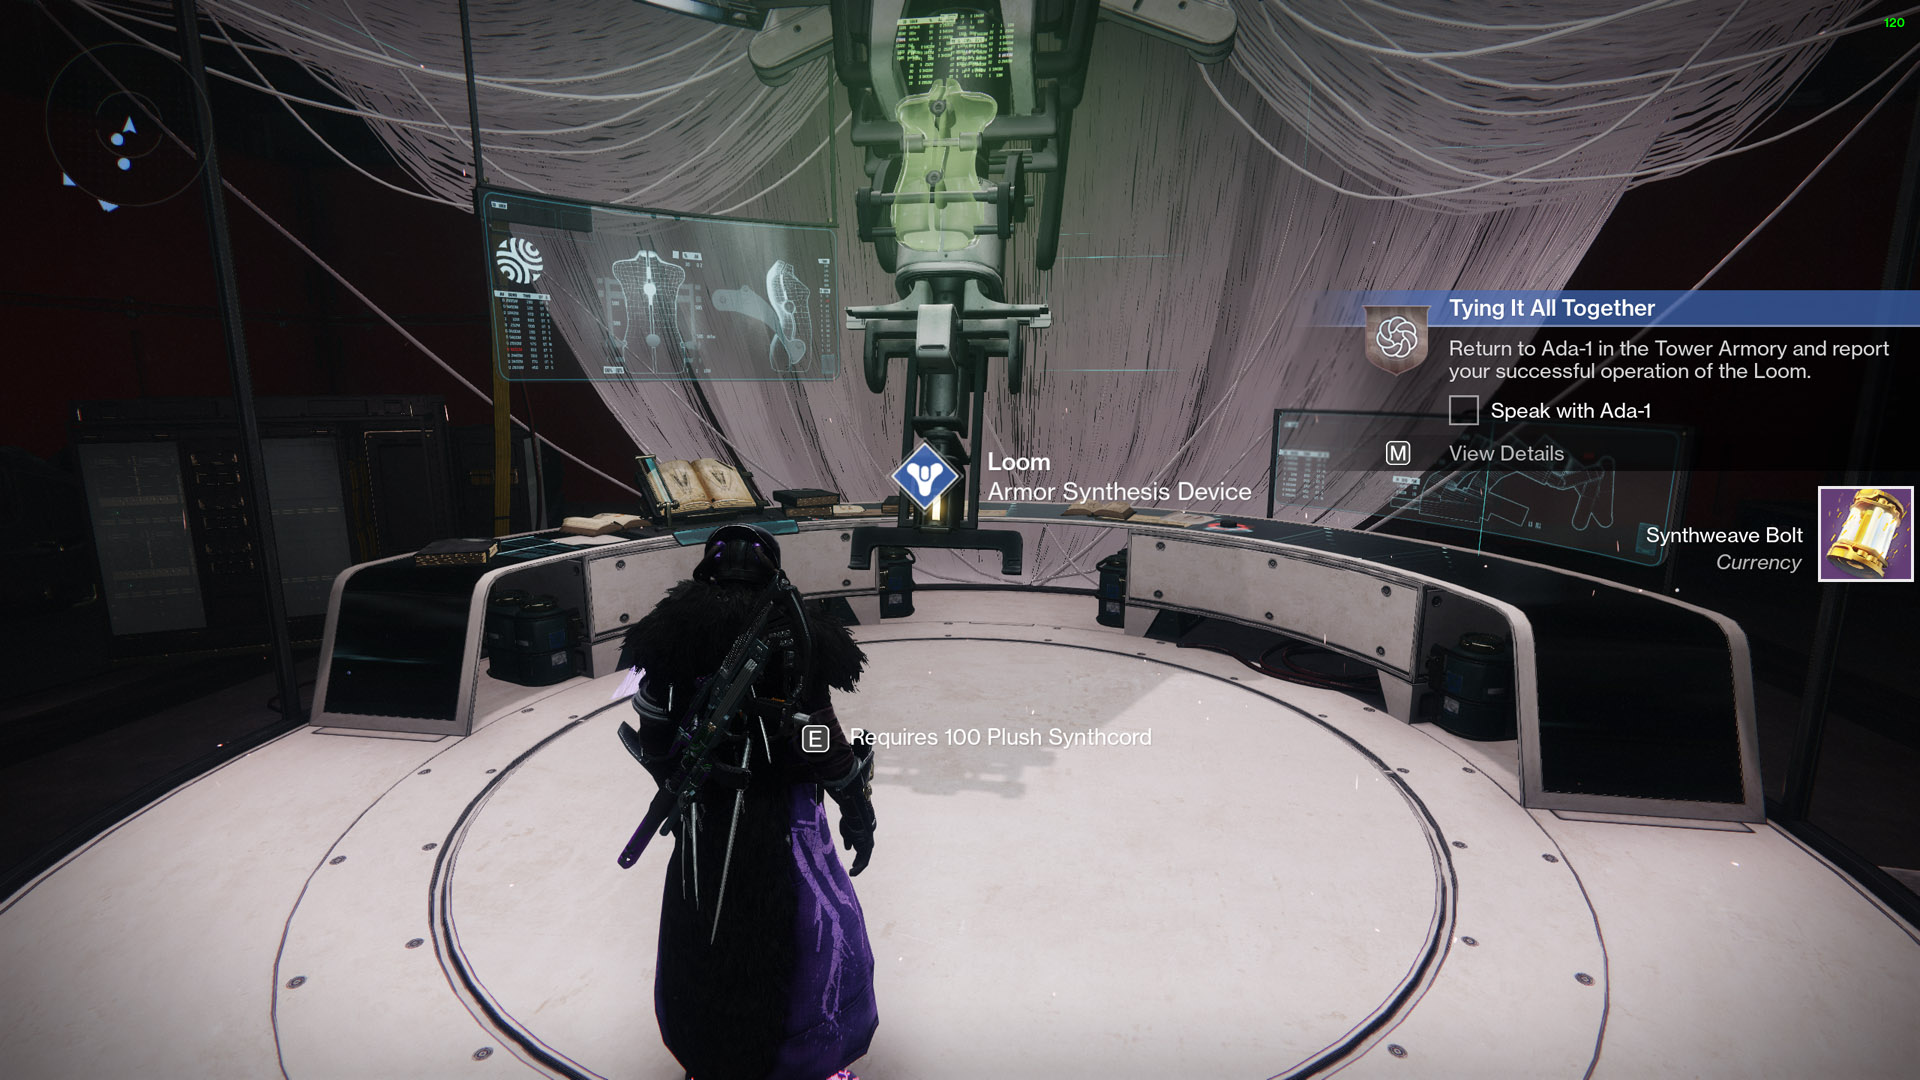 destiny 2 tying it all together loom